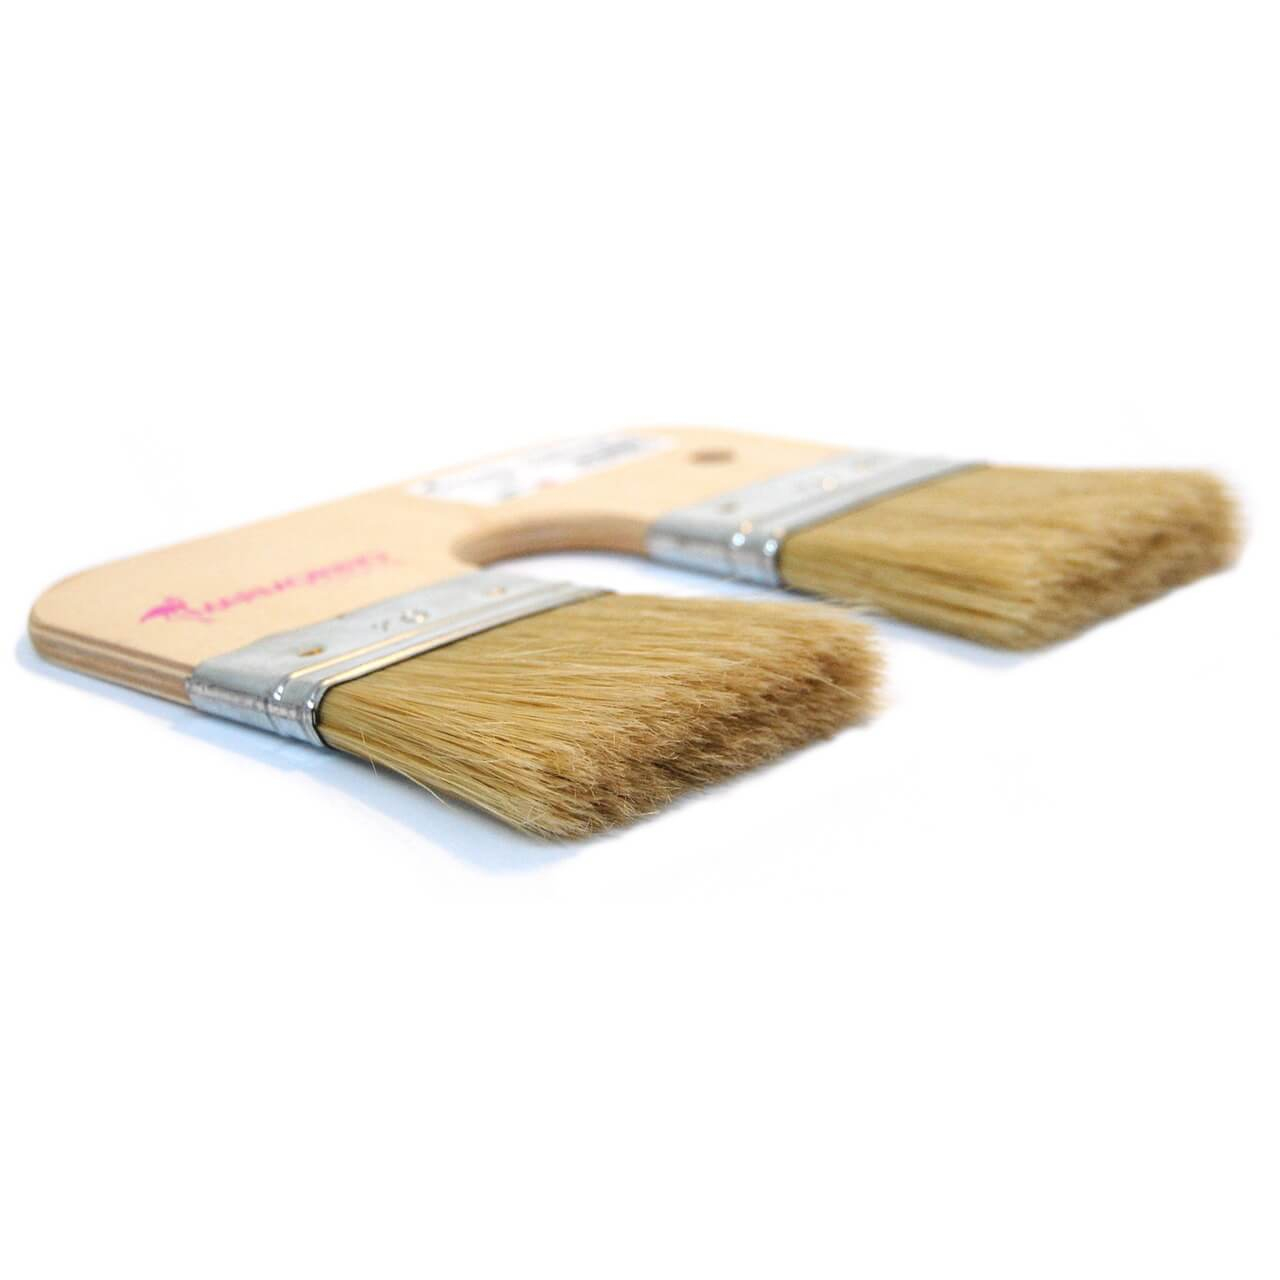 Double Paint Brush 01 97662.1496078855